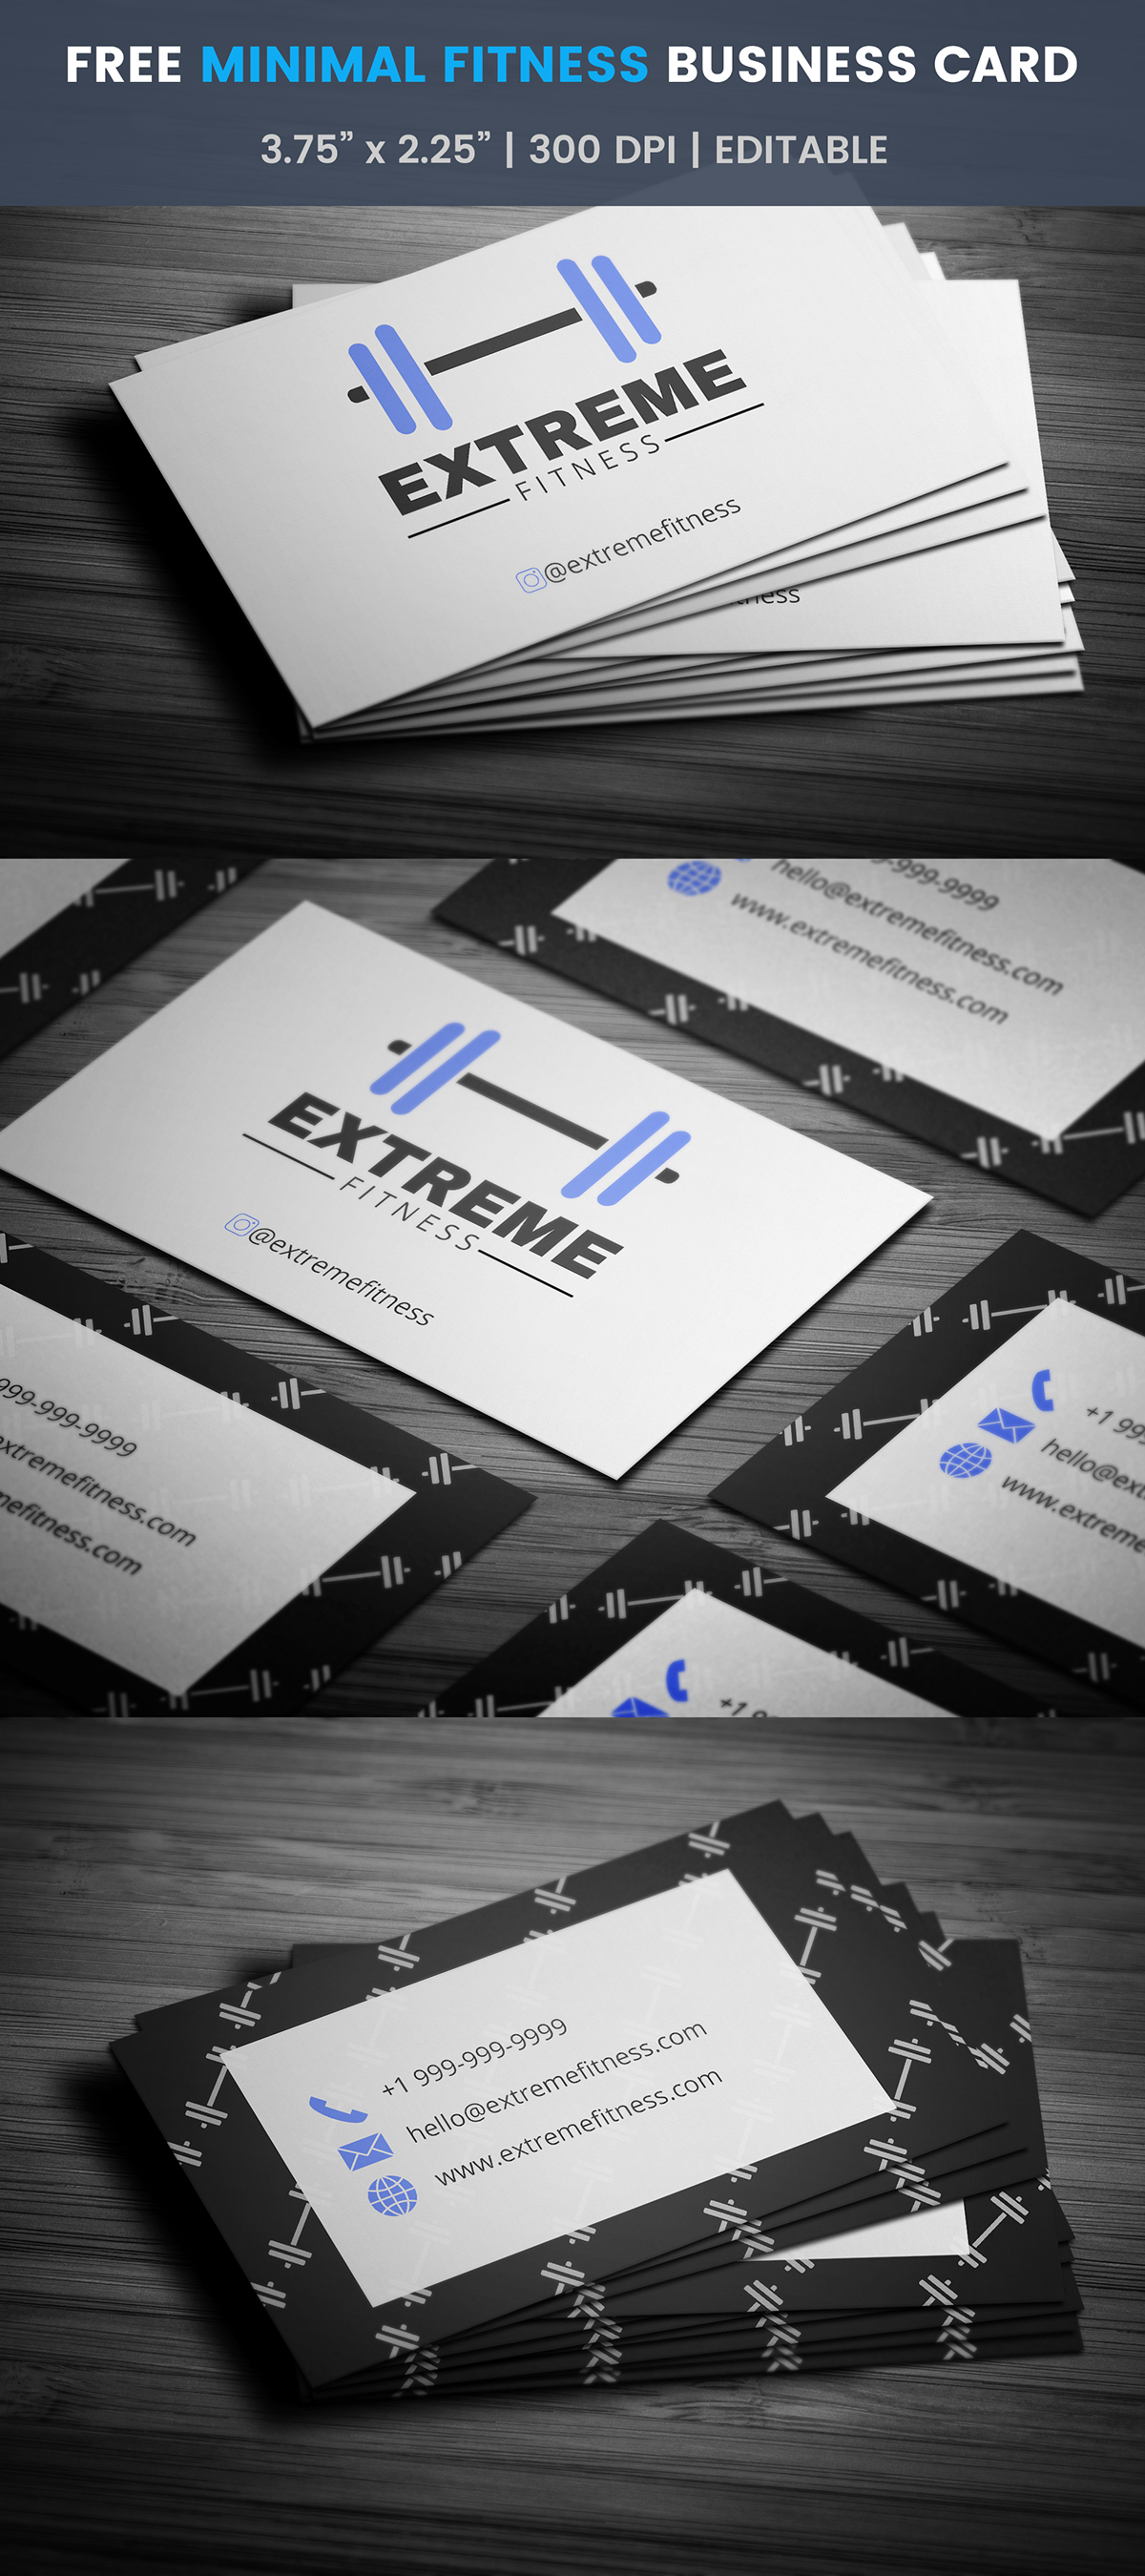 Free fitness business card template on pantone canvas gallery free fitness business card template cheaphphosting Image collections